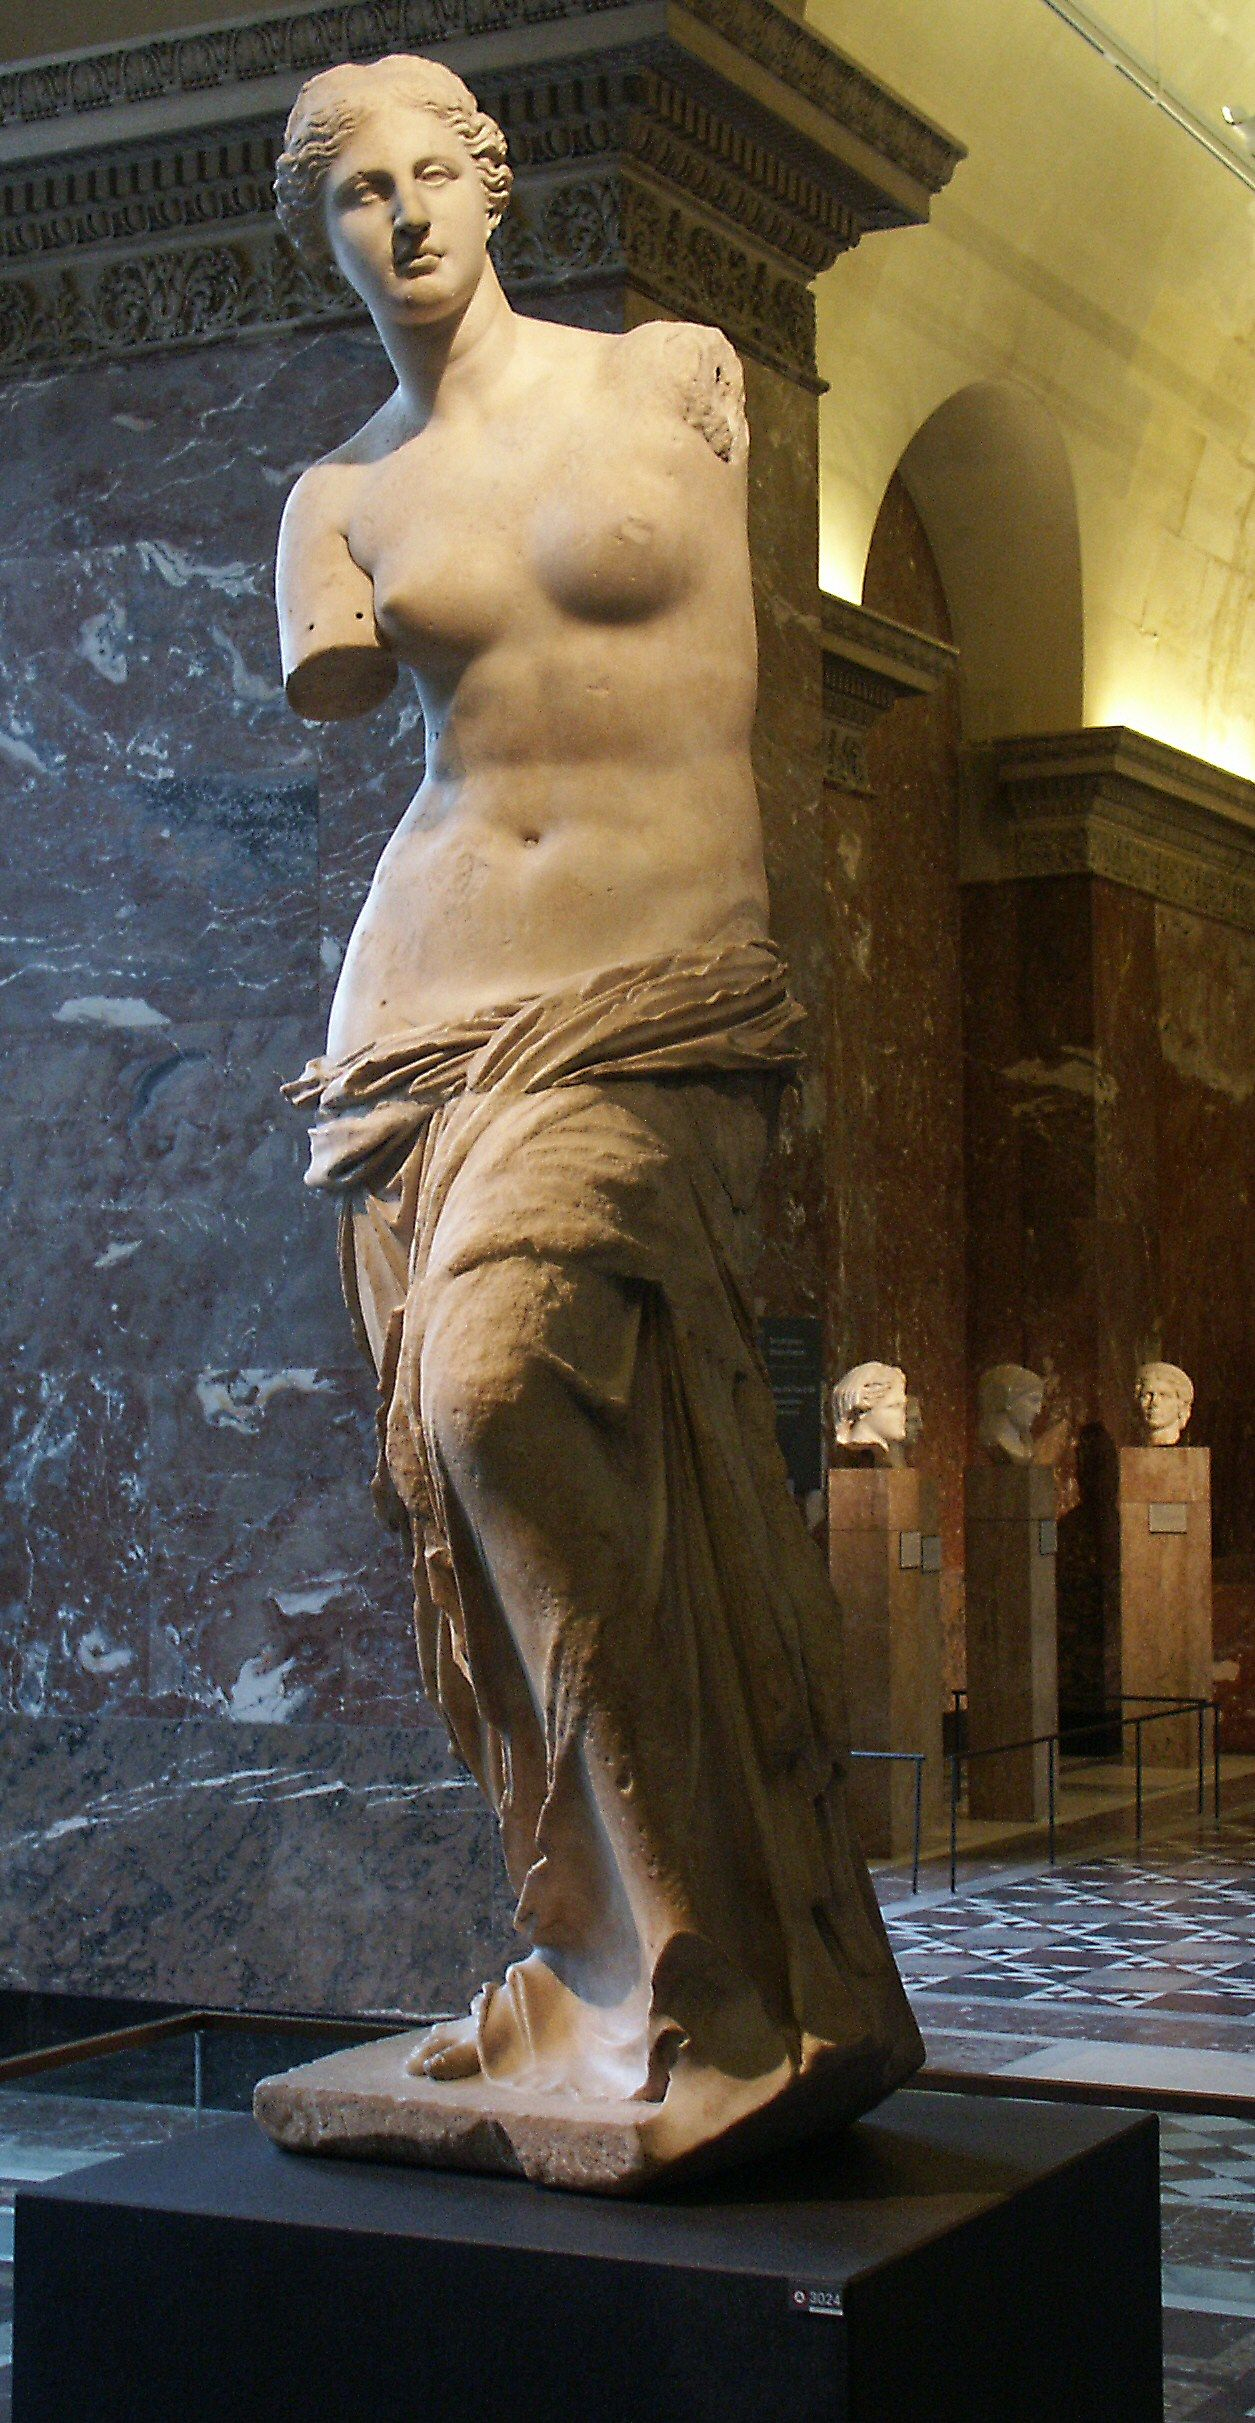 venus de milo statuevenus de milo tmnt, venus de milo statue, venus de milo 3d model, venus de milo sculpture, venus de milo de jalea, venus de milo painting, venus de milo arms, venus de milo stl, venus de milo papercraft, venus de milo description, venus de milo analysis, venus de milo breast size, venus de milo louvre, venus de milo 3d model free, venus de milo wikipedia, venus de milo tmnt 2012, venus de milo pronunciation, venus de milo model, venus de milo miles davis, venus de milo reconstruction